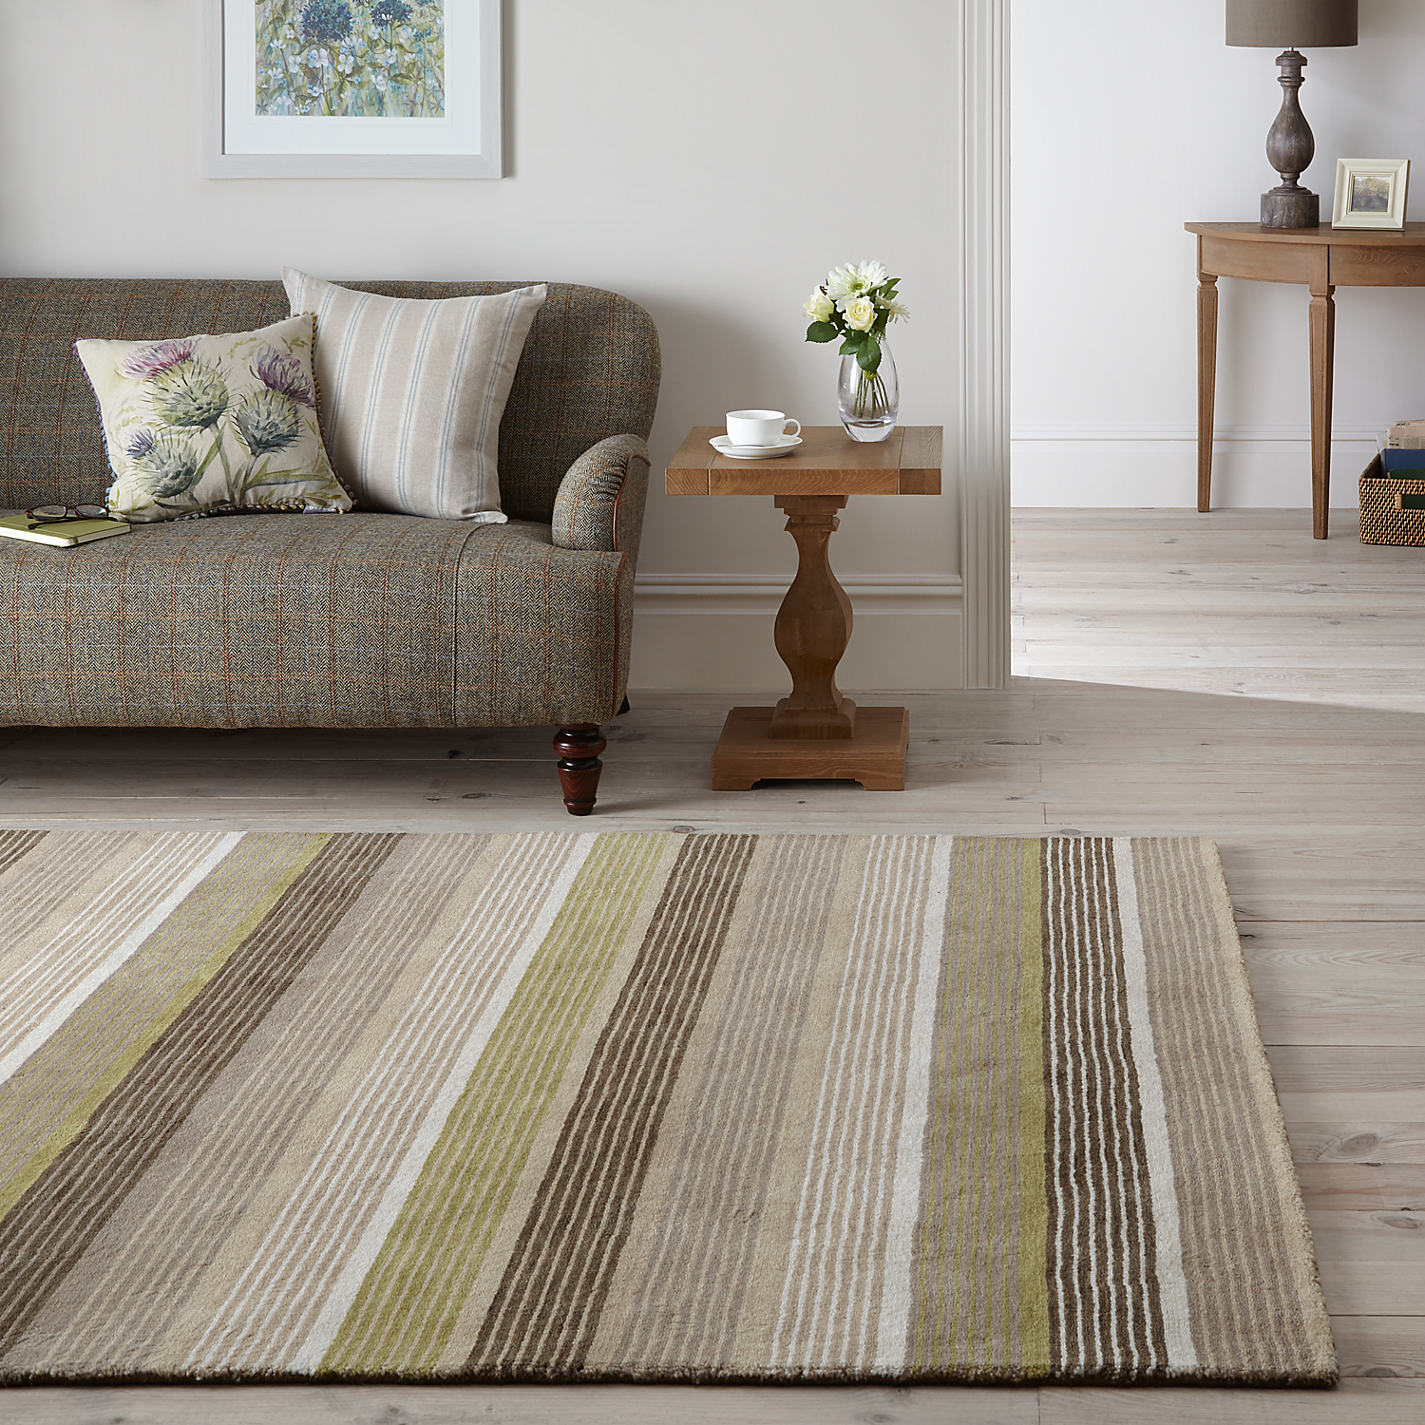 Beautiful john lewis laminate floor gallery home design for Home design john lewis